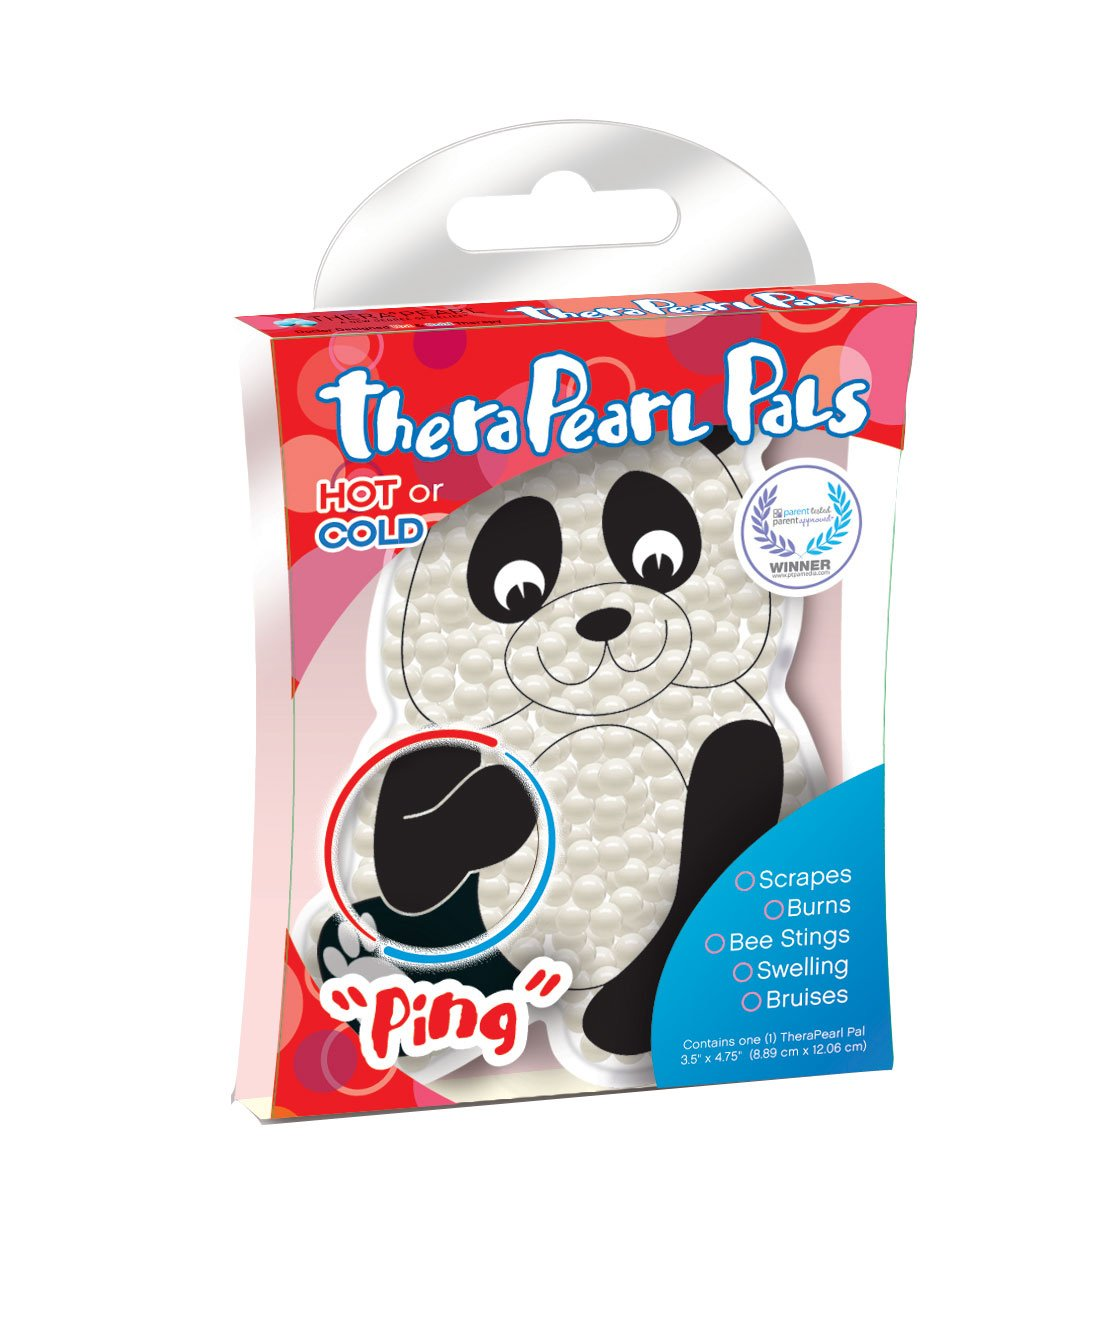 TheraPearl Children's Pals, Ping the Panda, Non Toxic Reusable Animal Shaped Hot Cold Therapy Pack, Flexible Compress for Injuries, Swelling, Pain Relief, Bee Stings